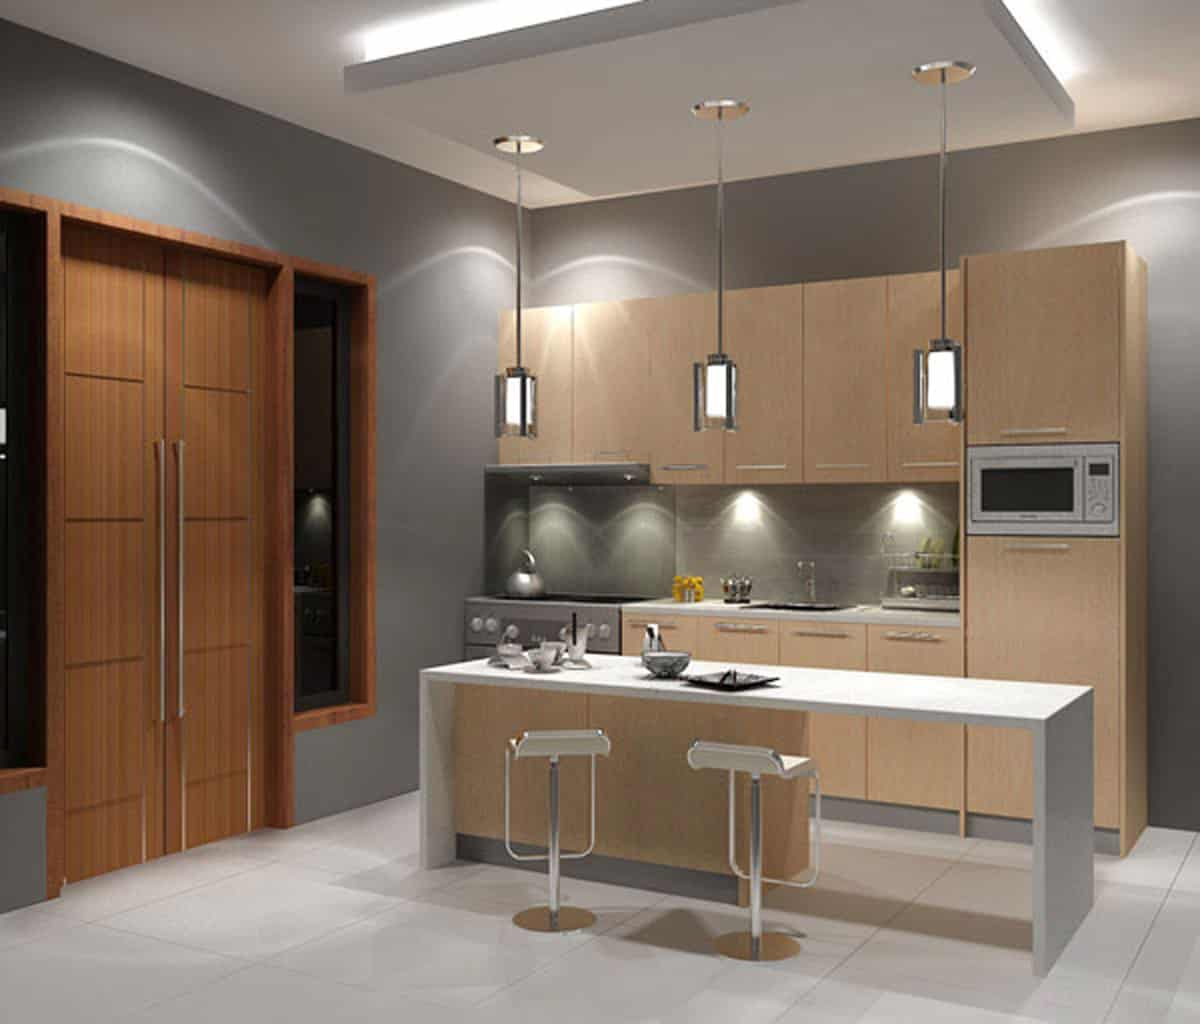 Small Kitchen Lighting Small Kitchen Design Ideas Are In This Neil Kelly Story